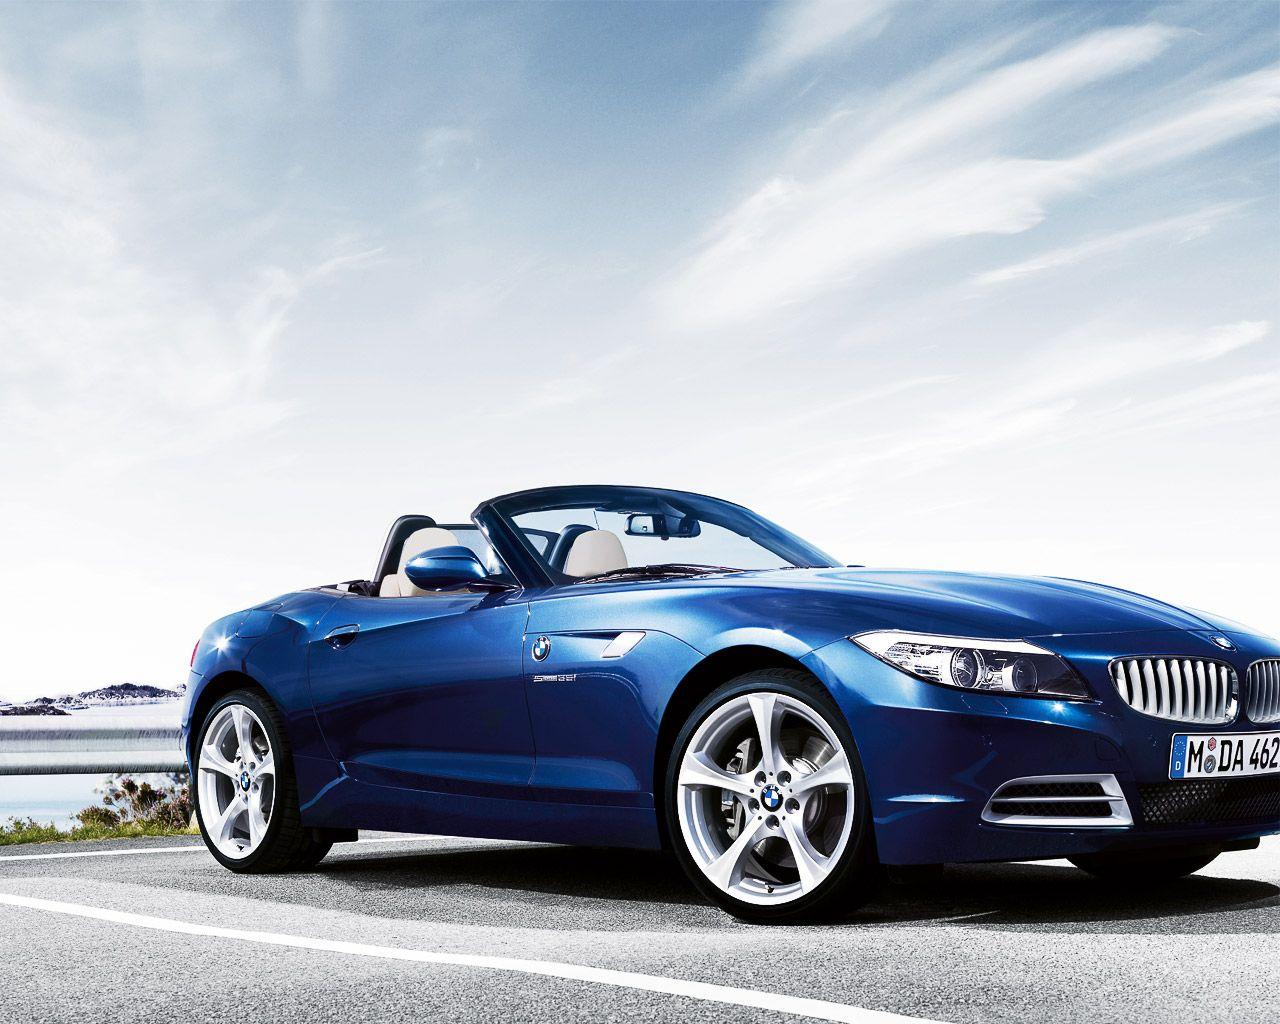 Bmw Z4 Roadster Wallpapers Wallpaper Cave